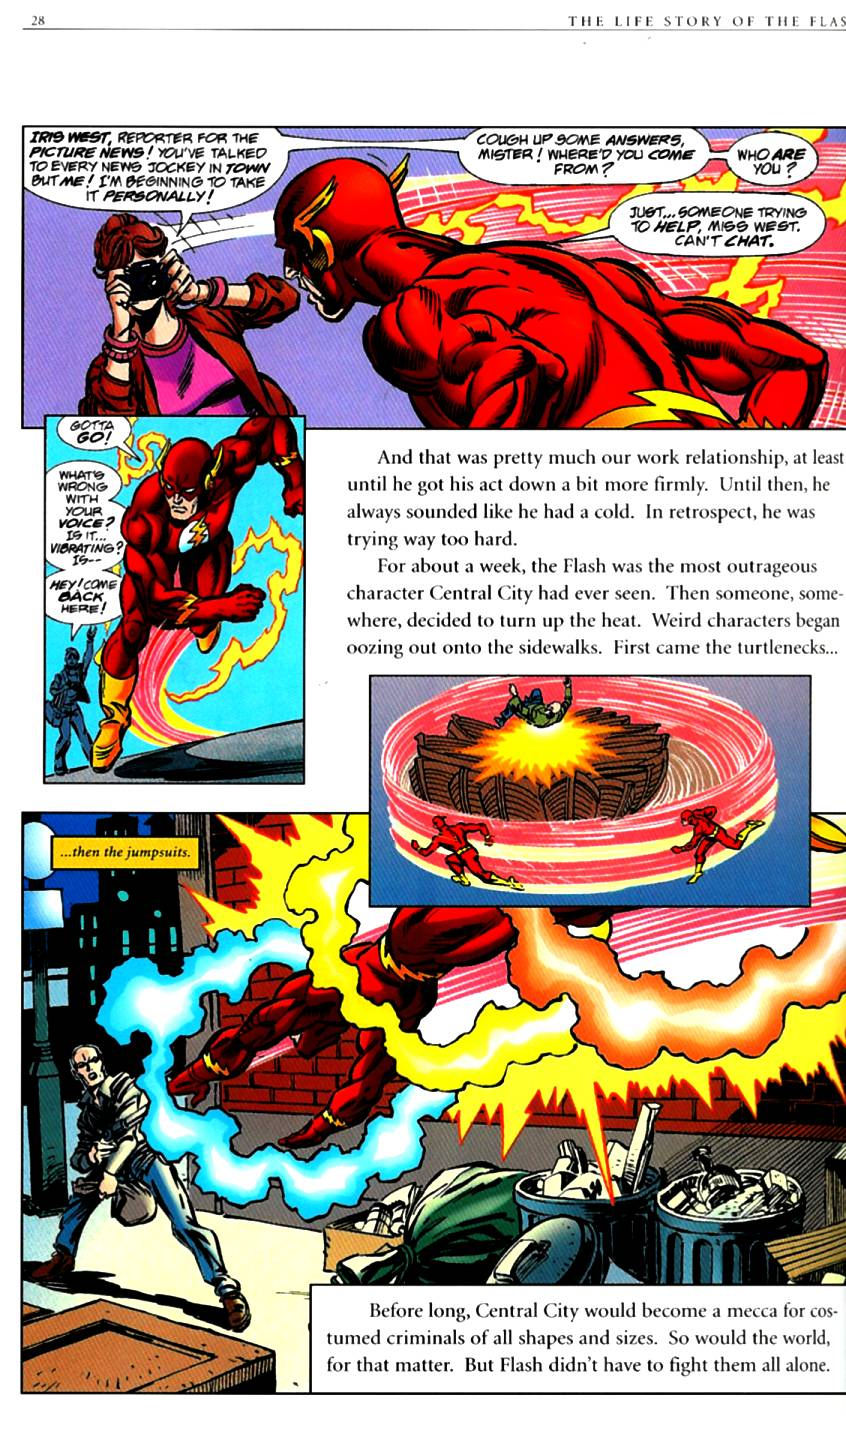 Read online The Life Story of the Flash comic -  Issue # Full - 30